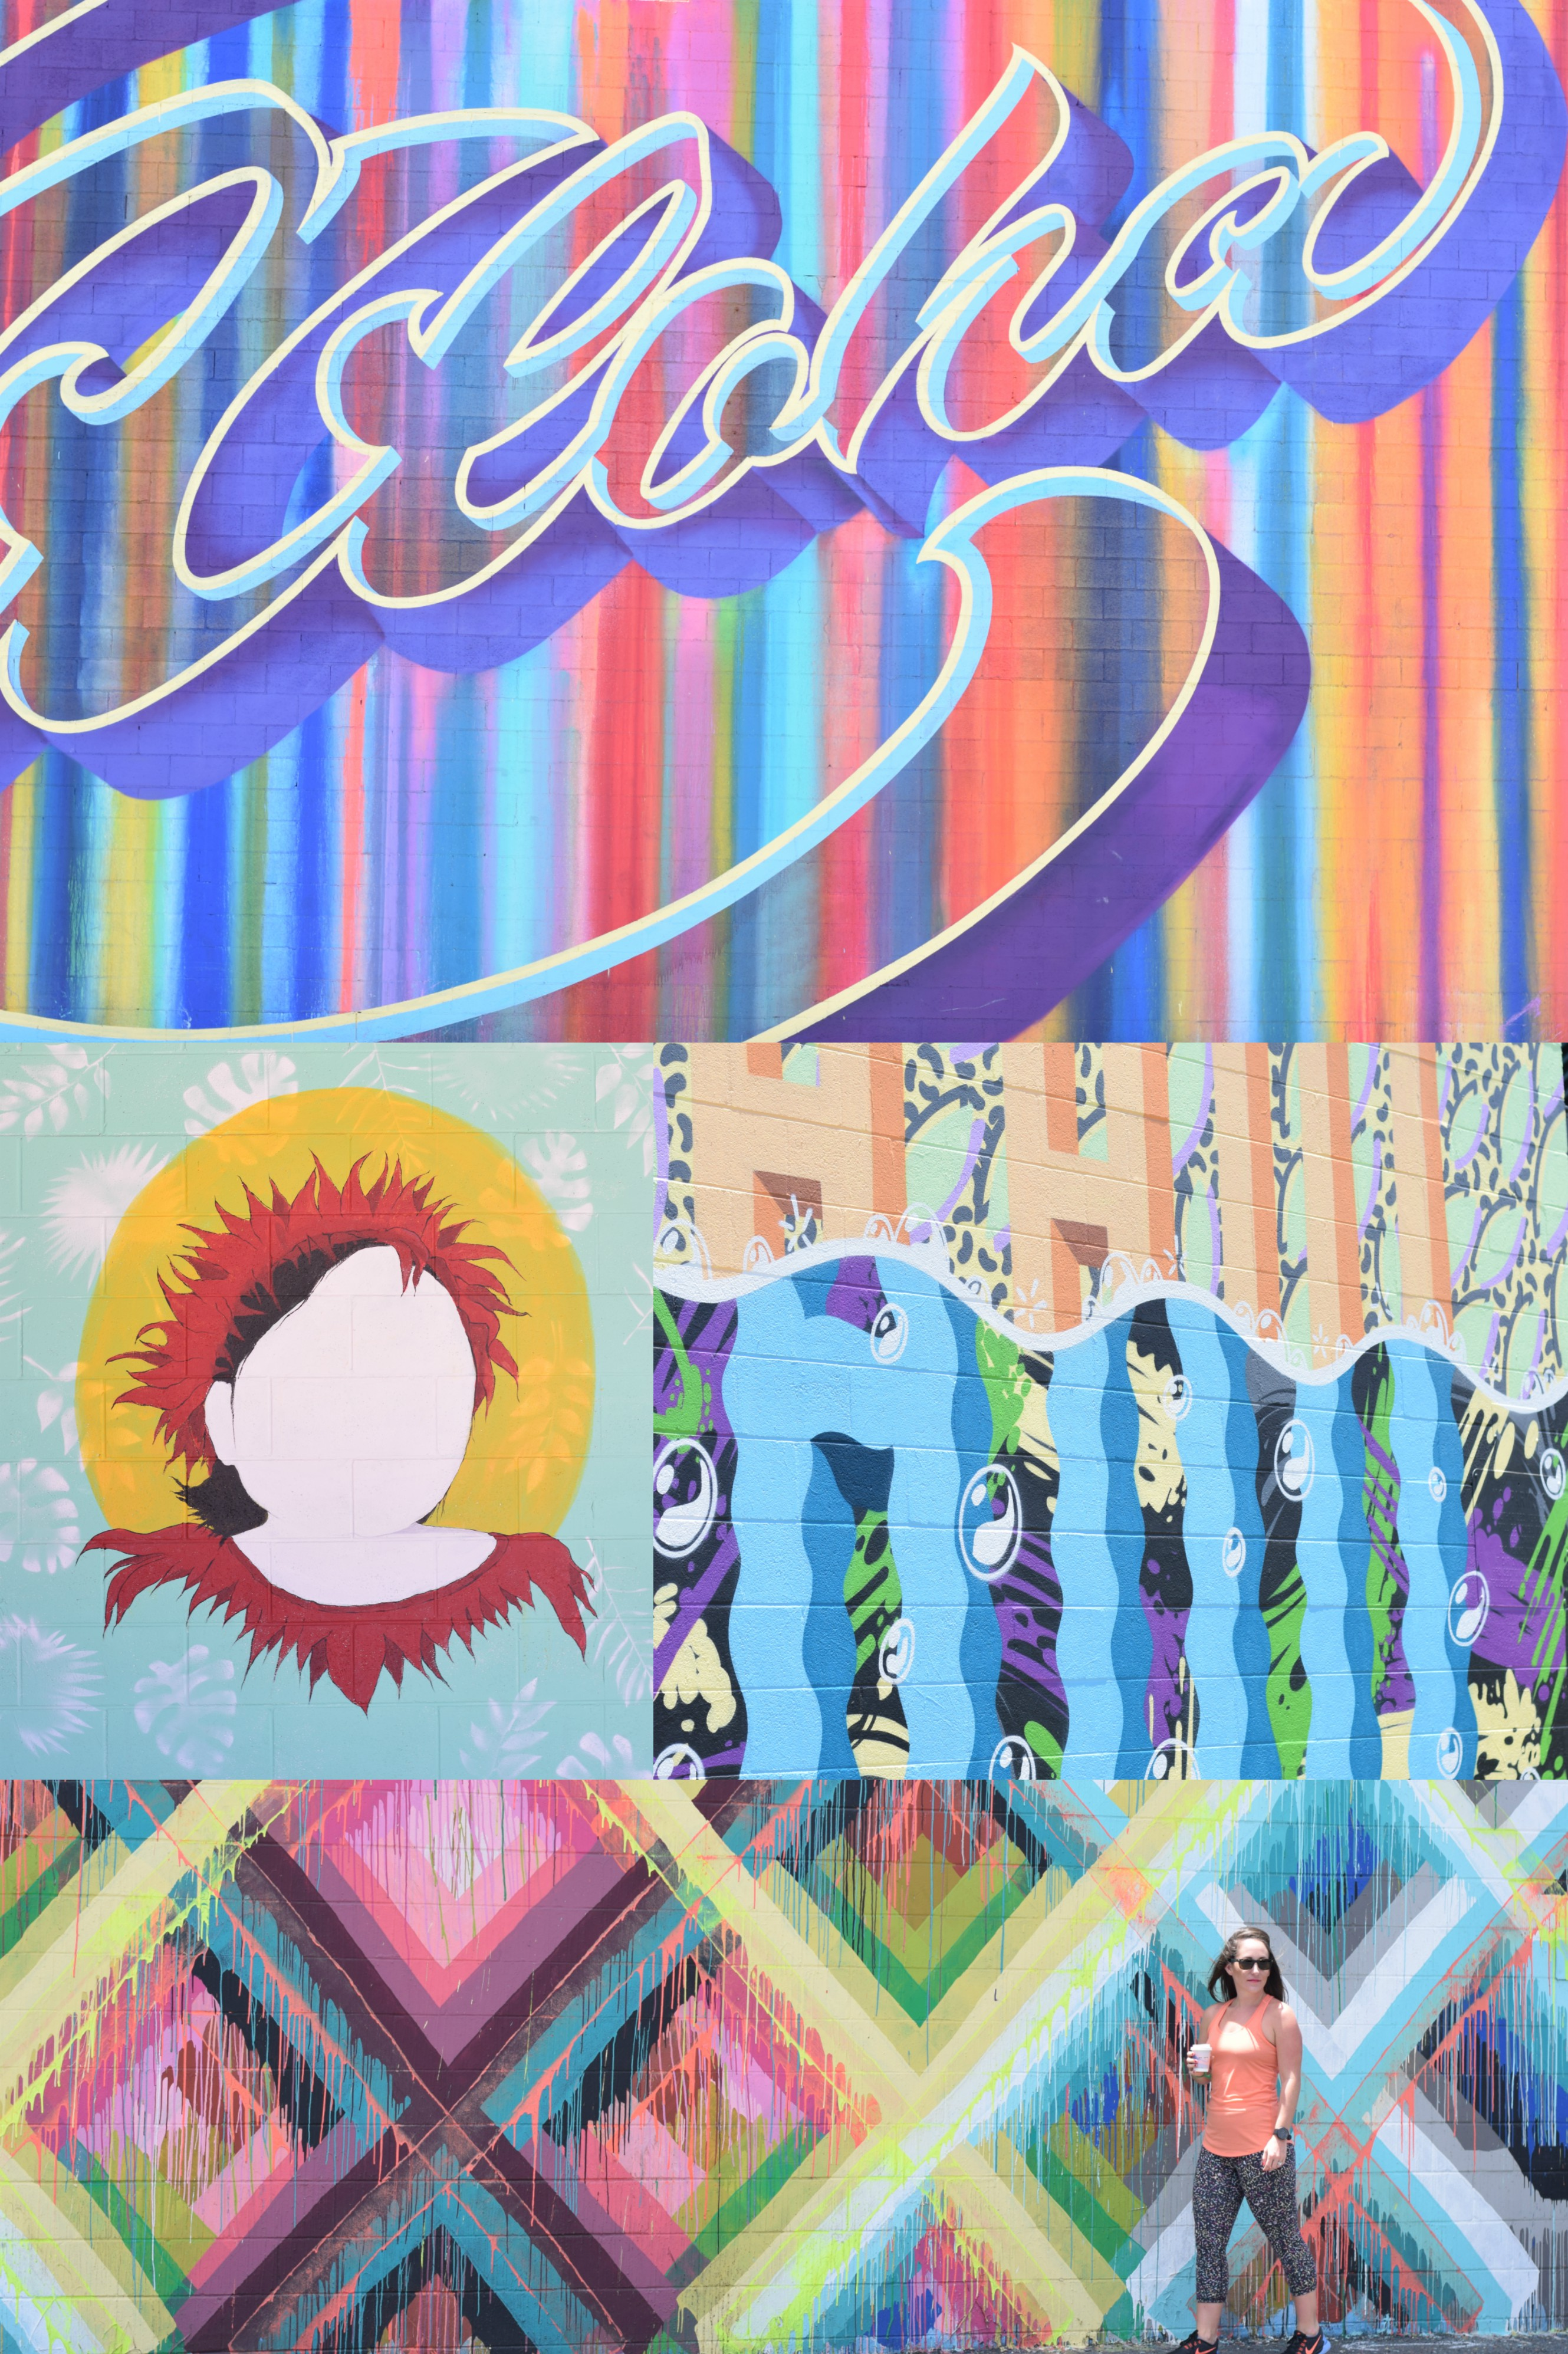 Kakaako Wall Murals - The Instagram Guide To Honolulu - Instagram Worthy Spots Honolulu - Oahu Guide For Instagram - Best Places To Take Photos Honolulu - Oahu Vacation Guide - Where To Visit Hawaii - Hawaii Itinerary - Communikait by Kait Hanson